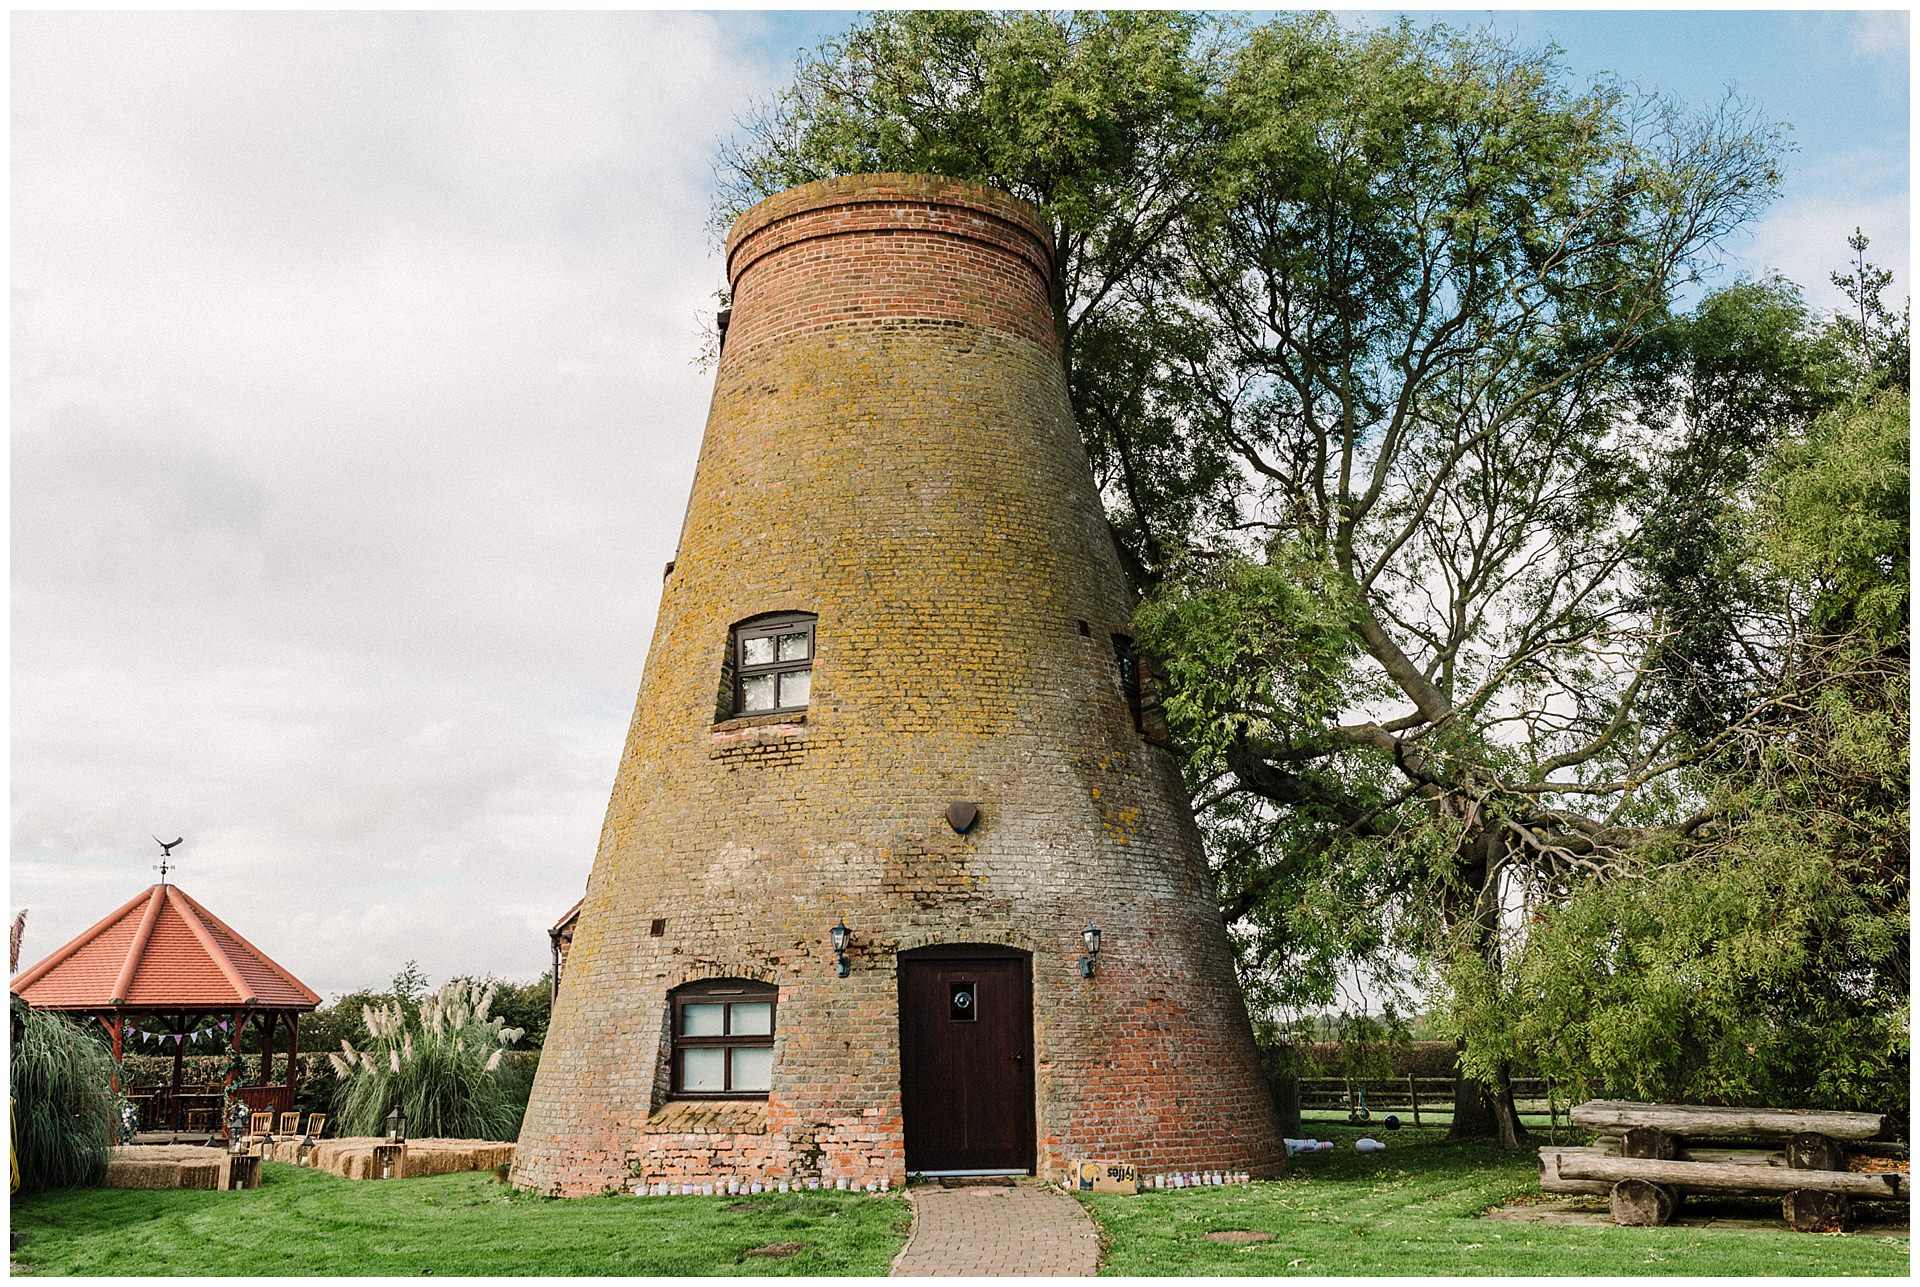 The old windmill at Fishlake Mill near Doncaster